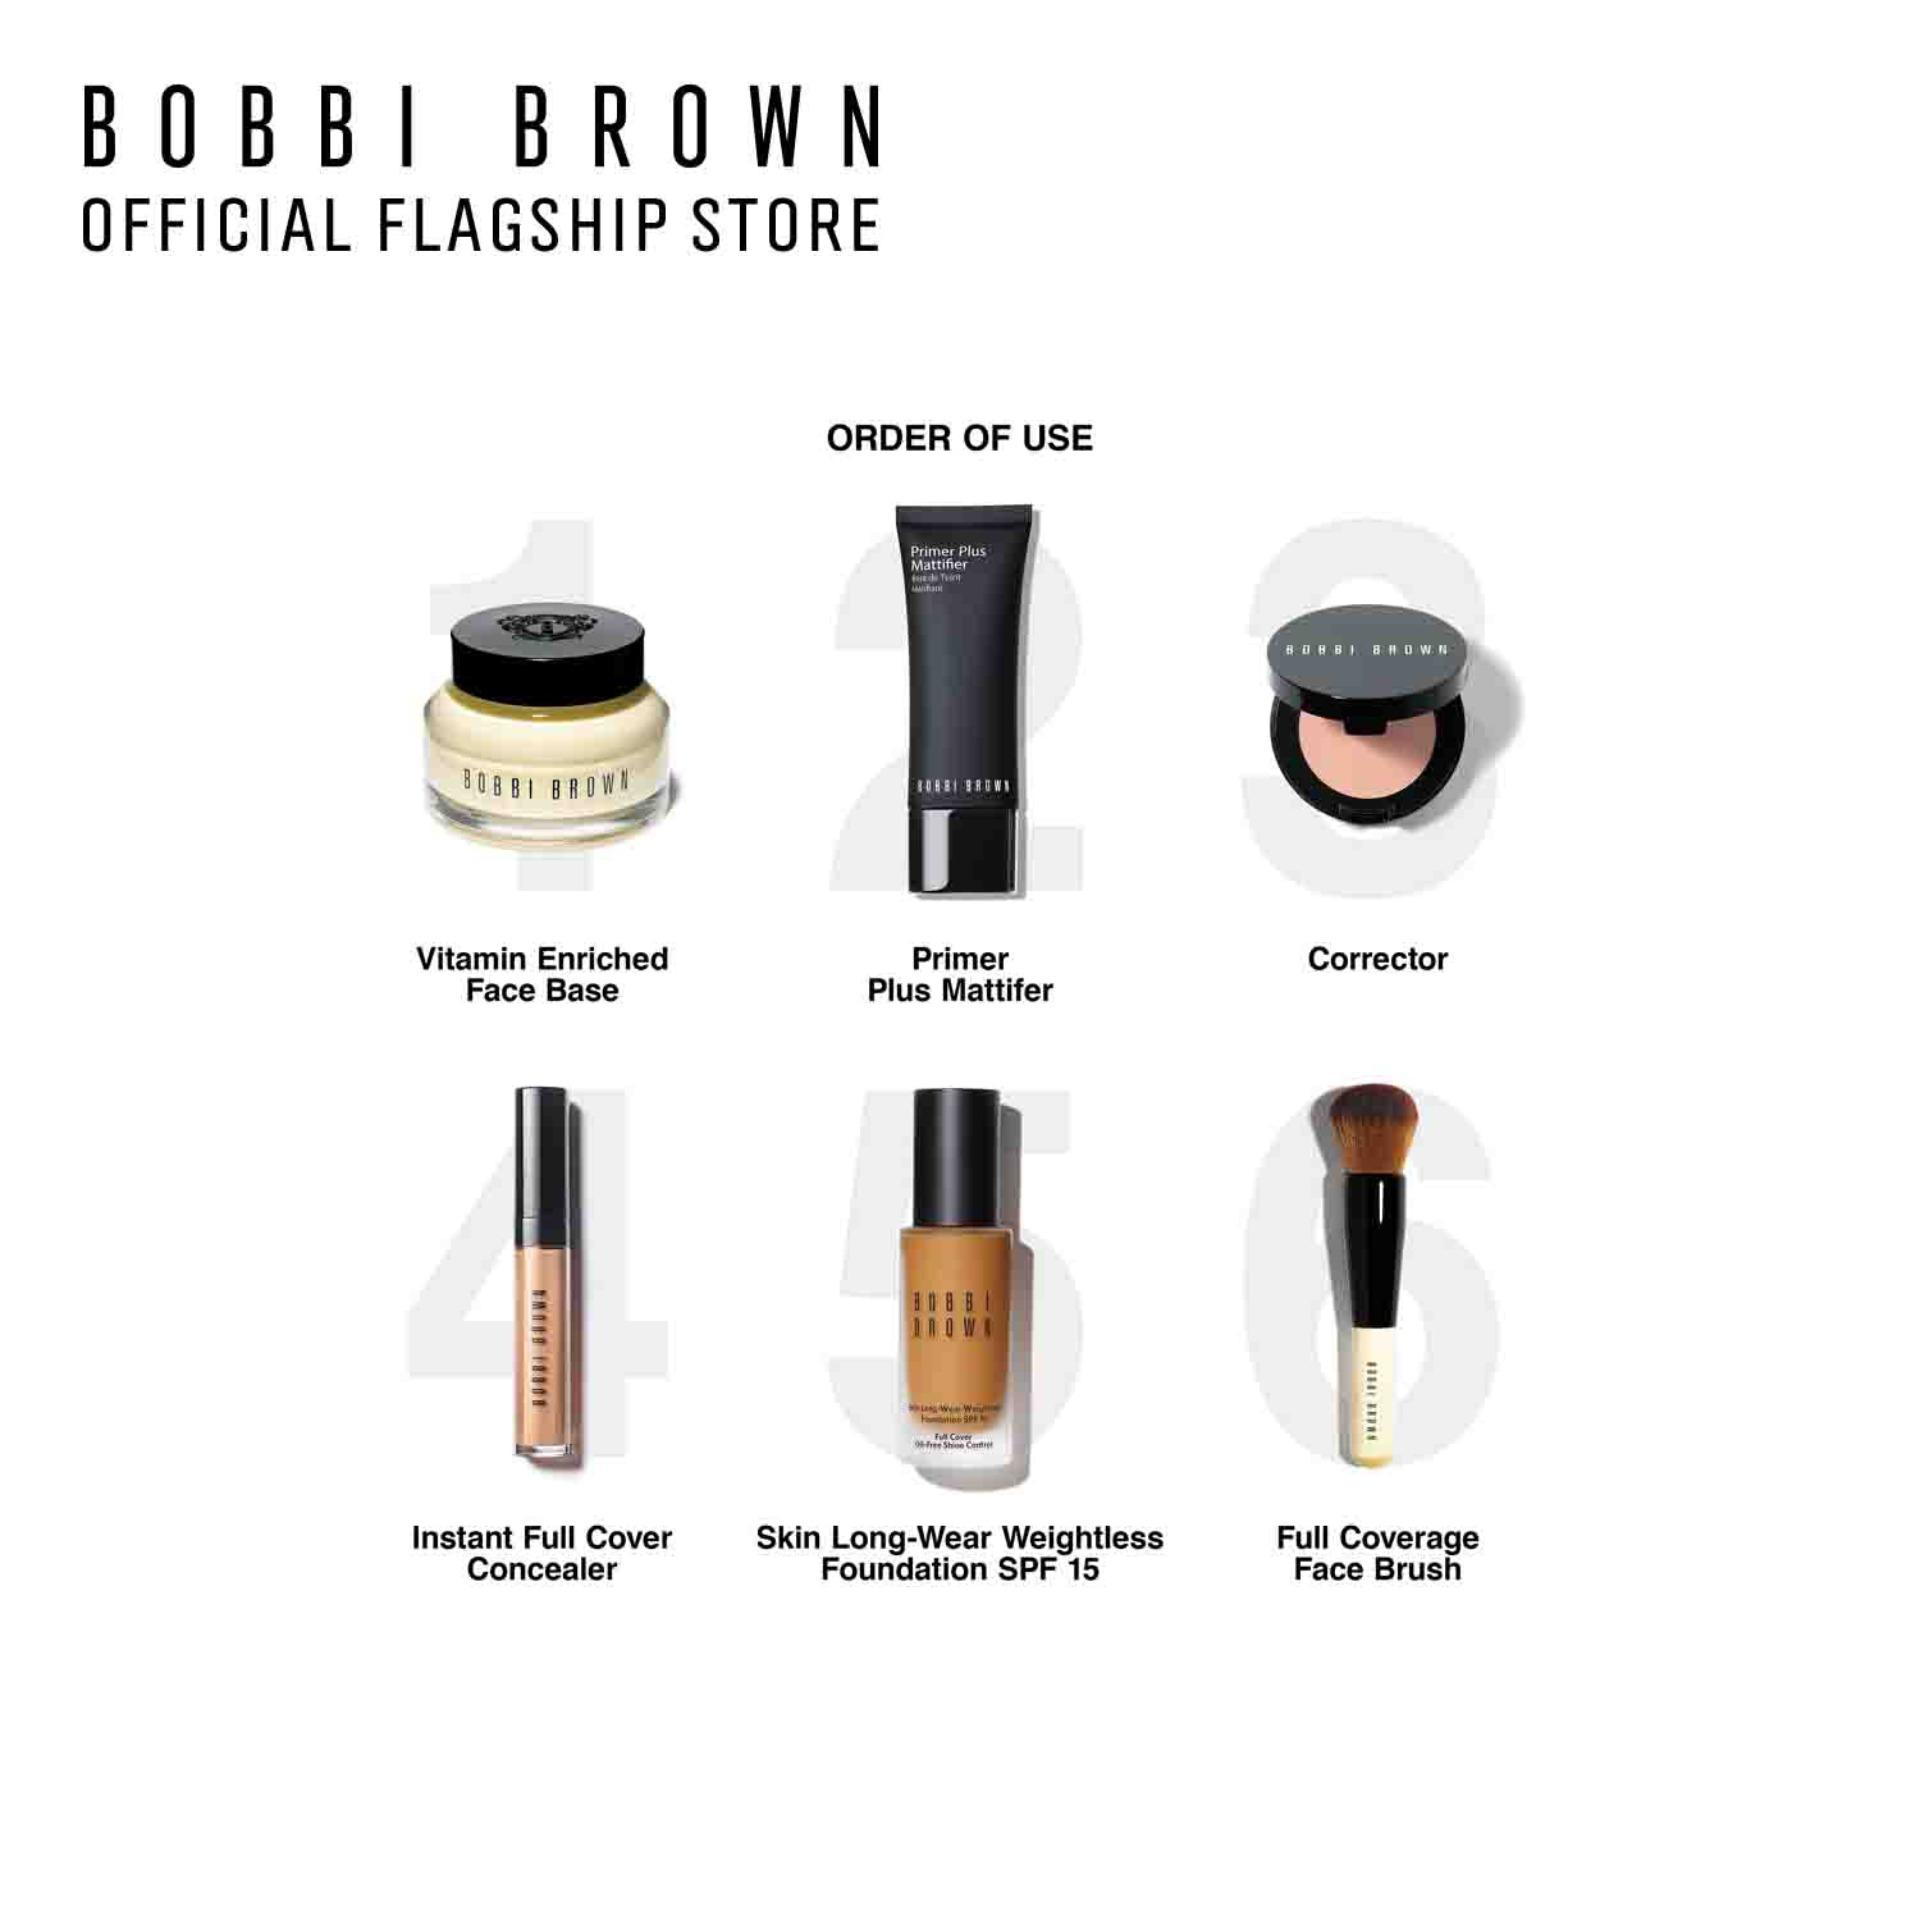 Kem lót dưỡng da Bobbi Brown Vitamin Enriched Face Base - Primer Plus Moisturizer 50ml